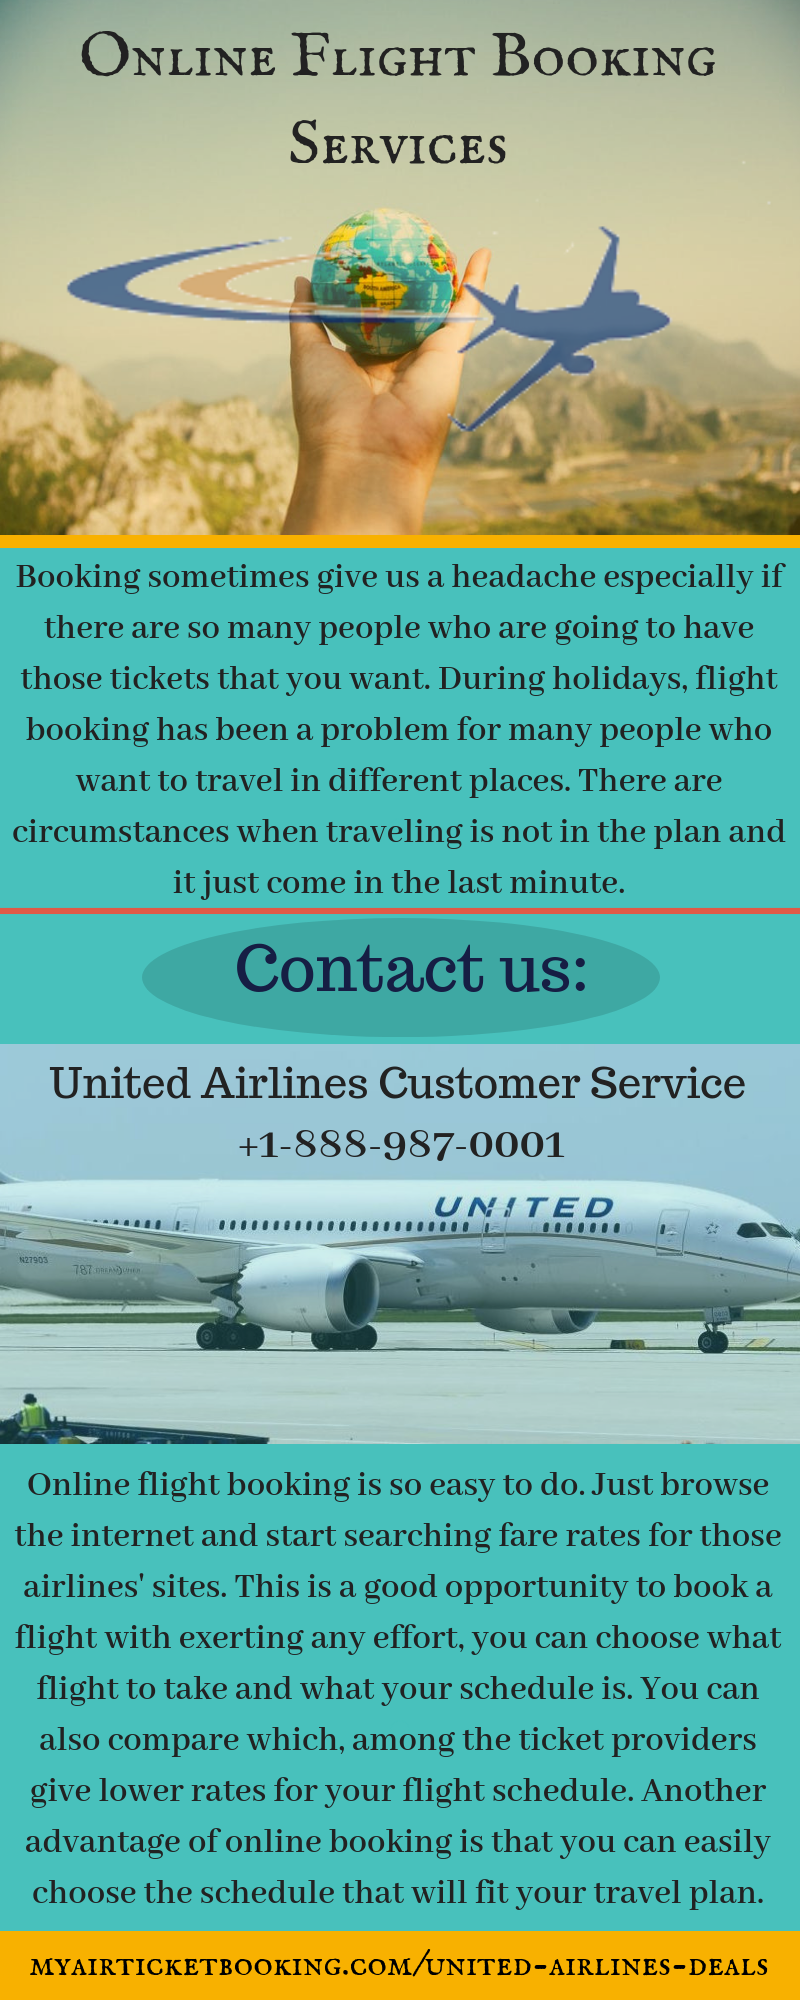 United Airlines Customer Service Number +18889870001 in